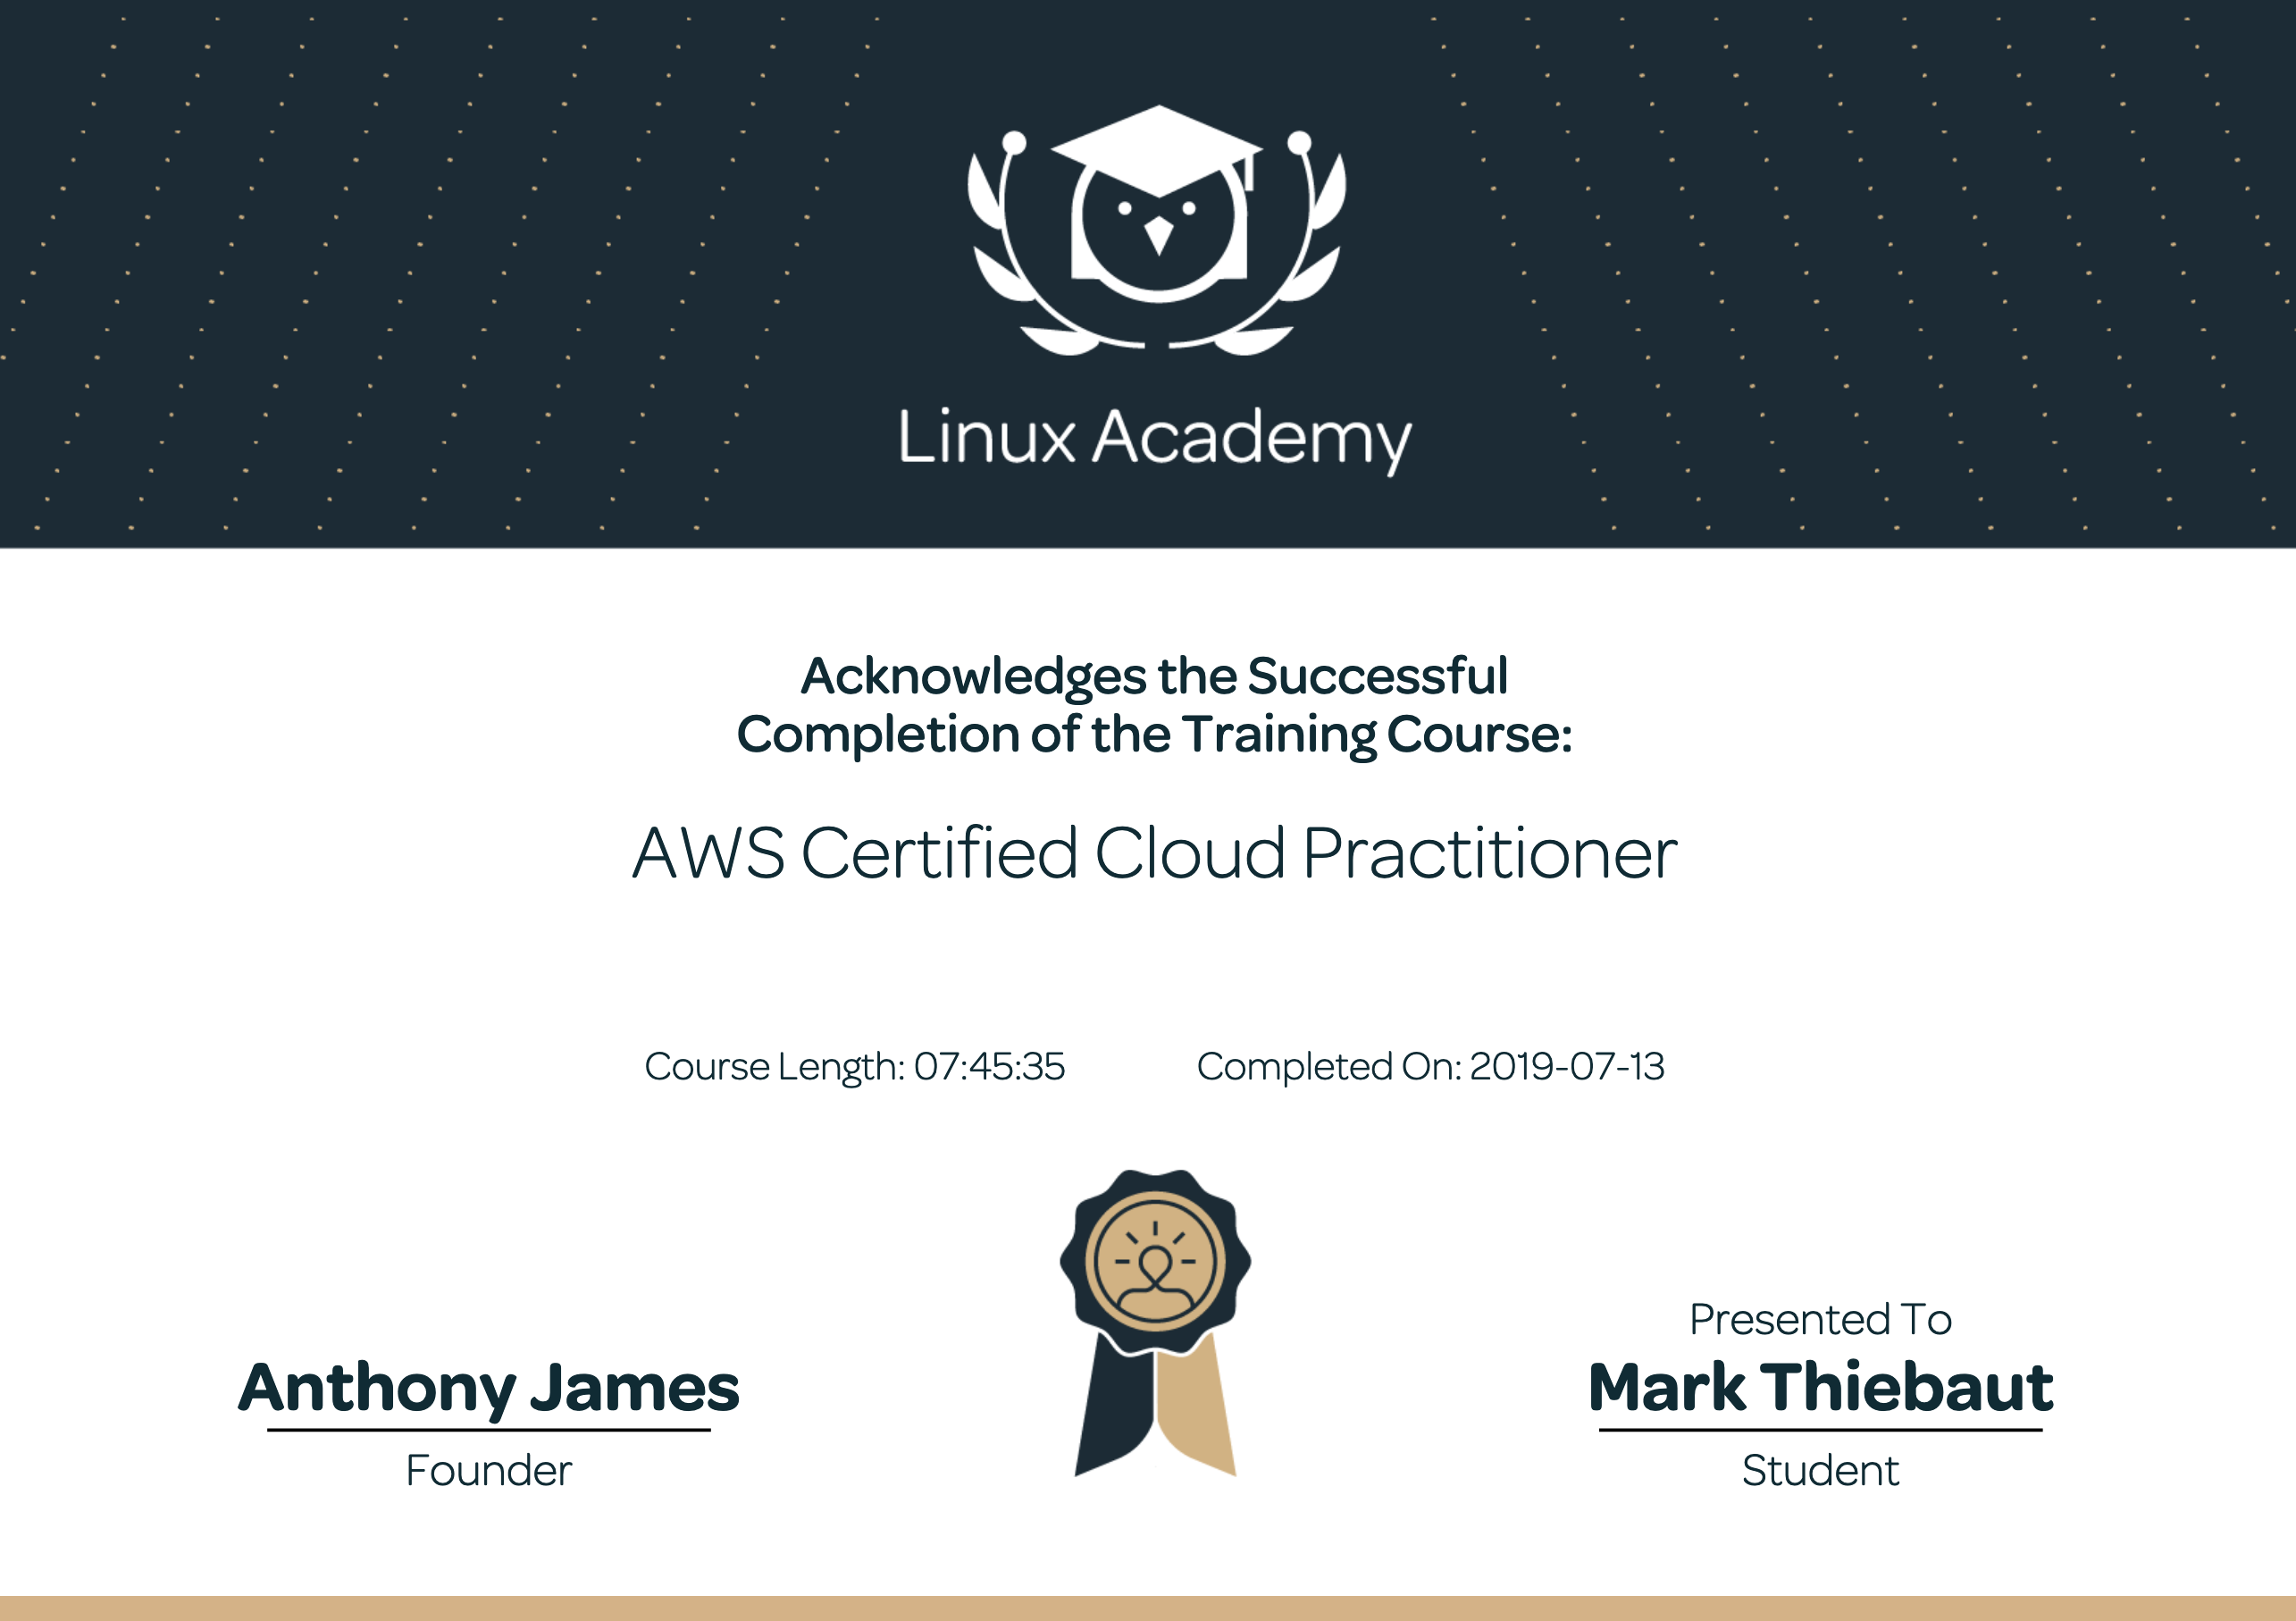 Training Course: AWS Certified Cloud Practitioner - Linux Academy